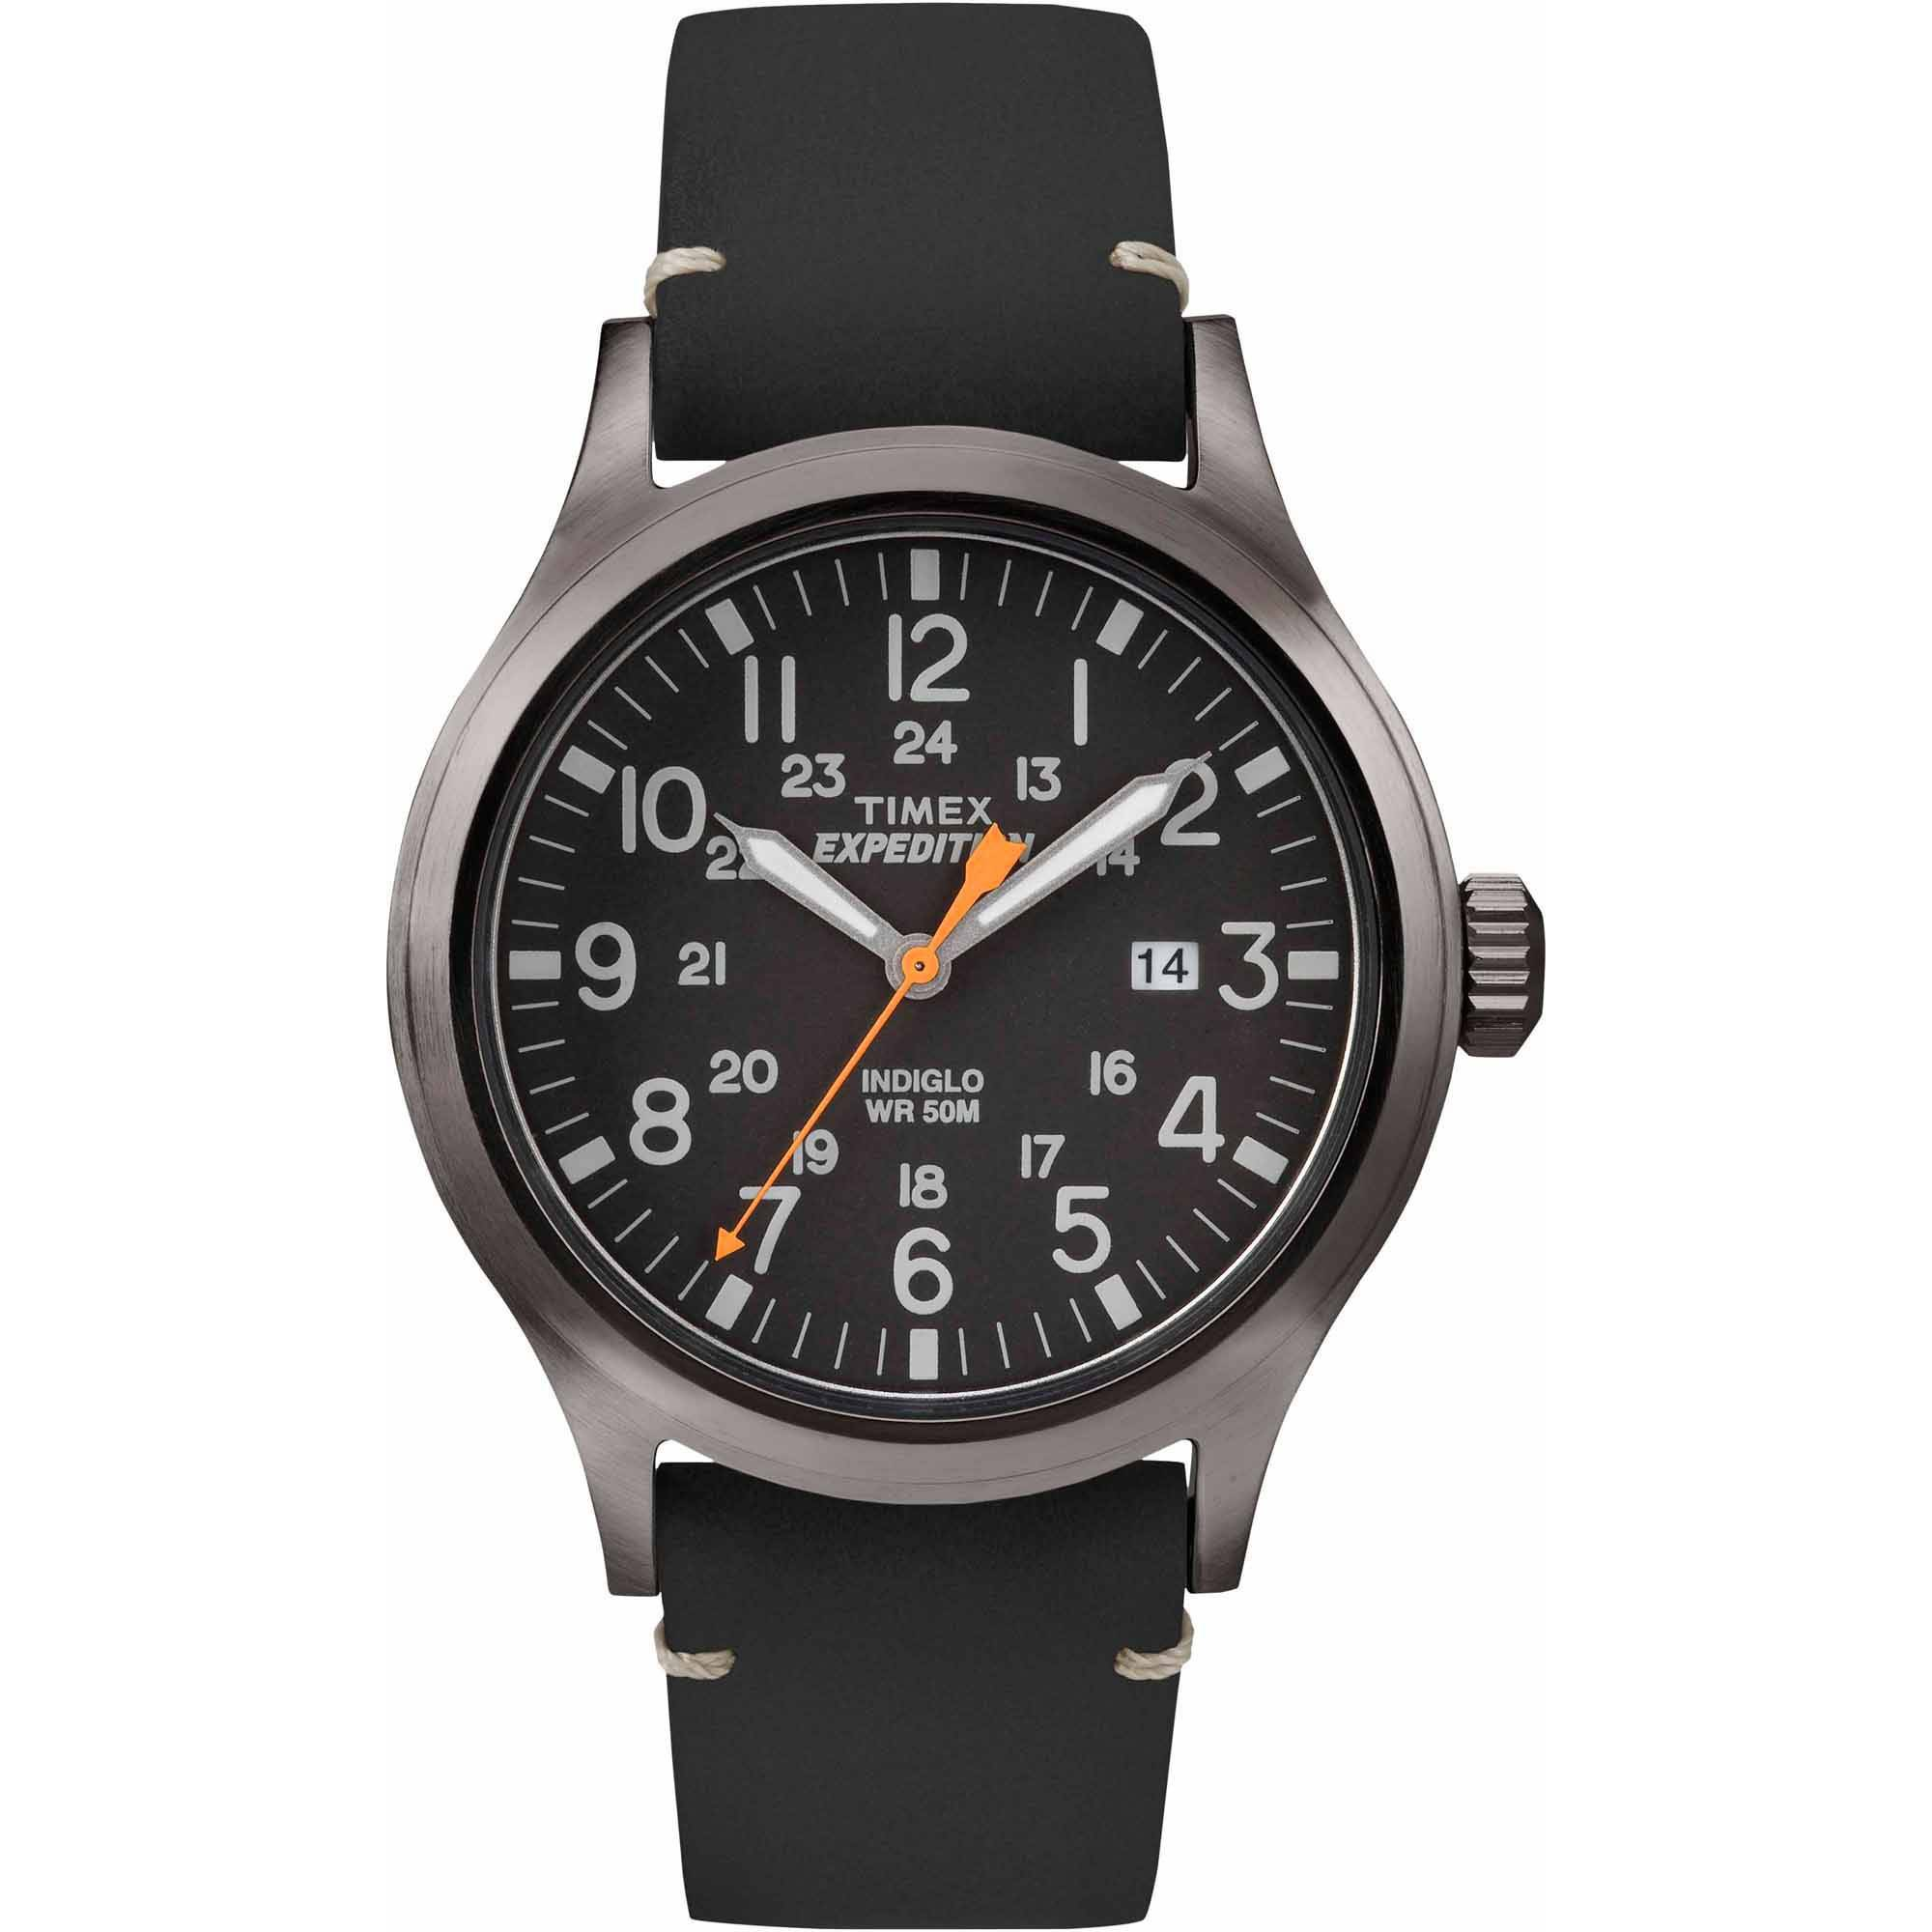 Timex Men's Expedition Scout Watch, Black Leather Strap by Timex